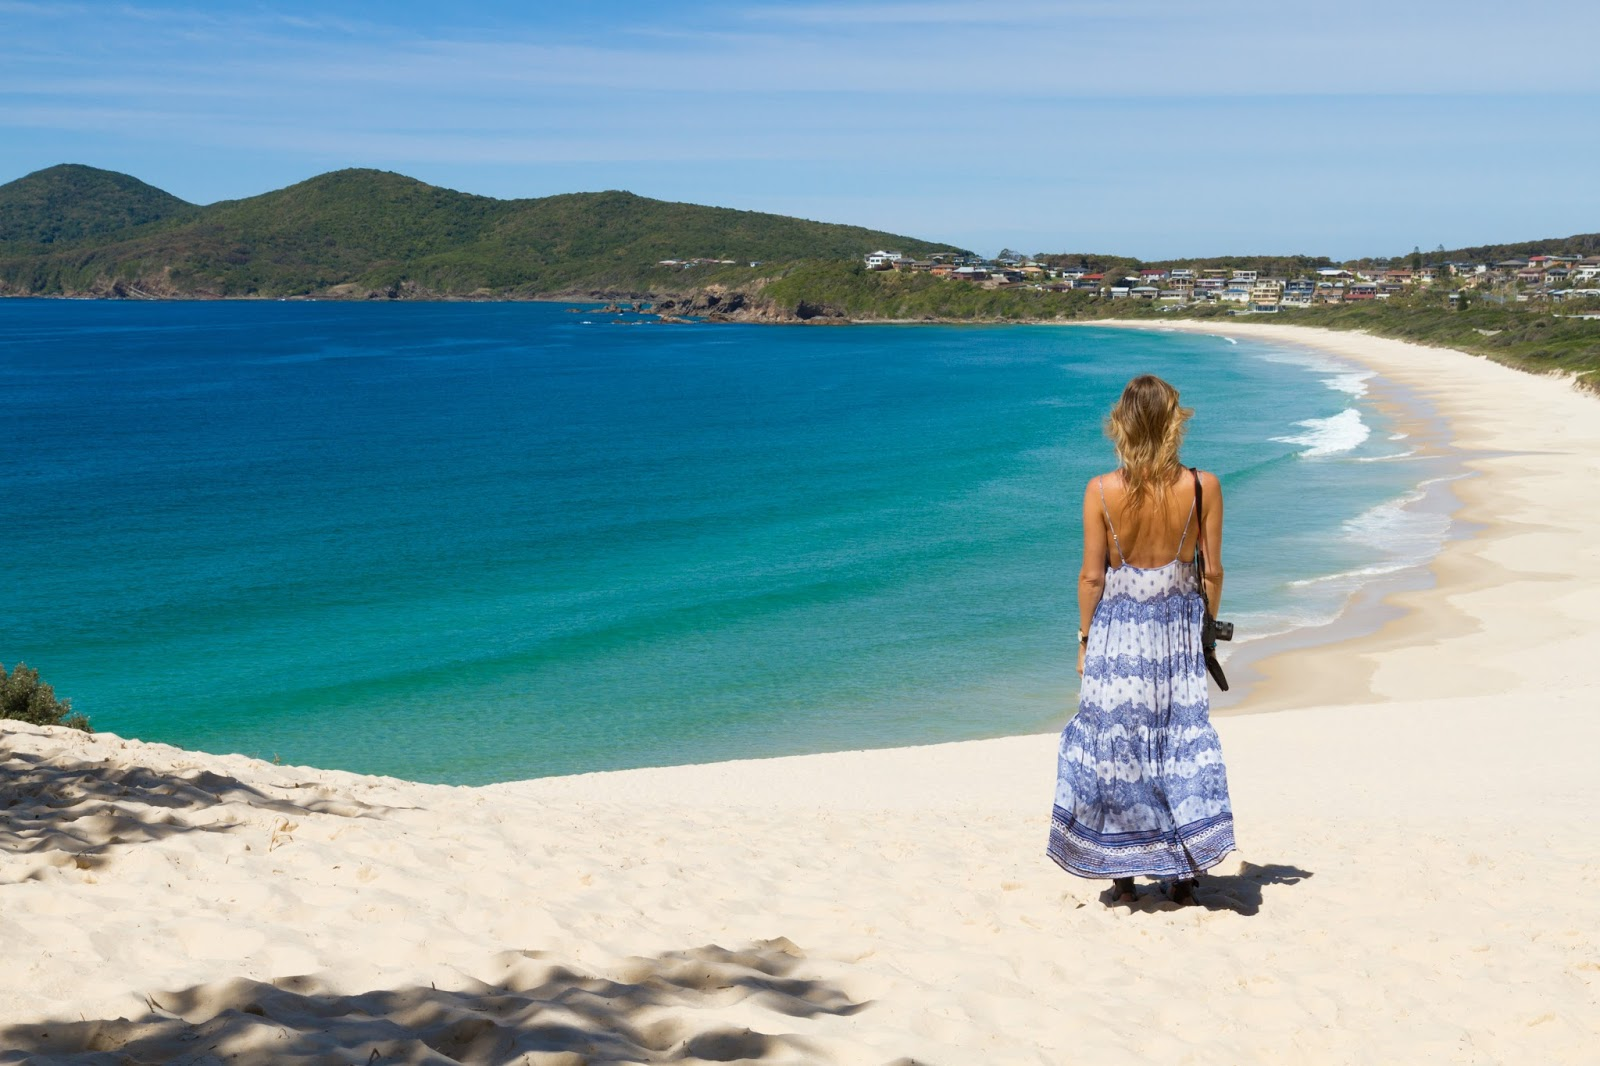 travel and fashion blogger, Alison Hutchinson, at one mile beach in Forster, NSW, Australia